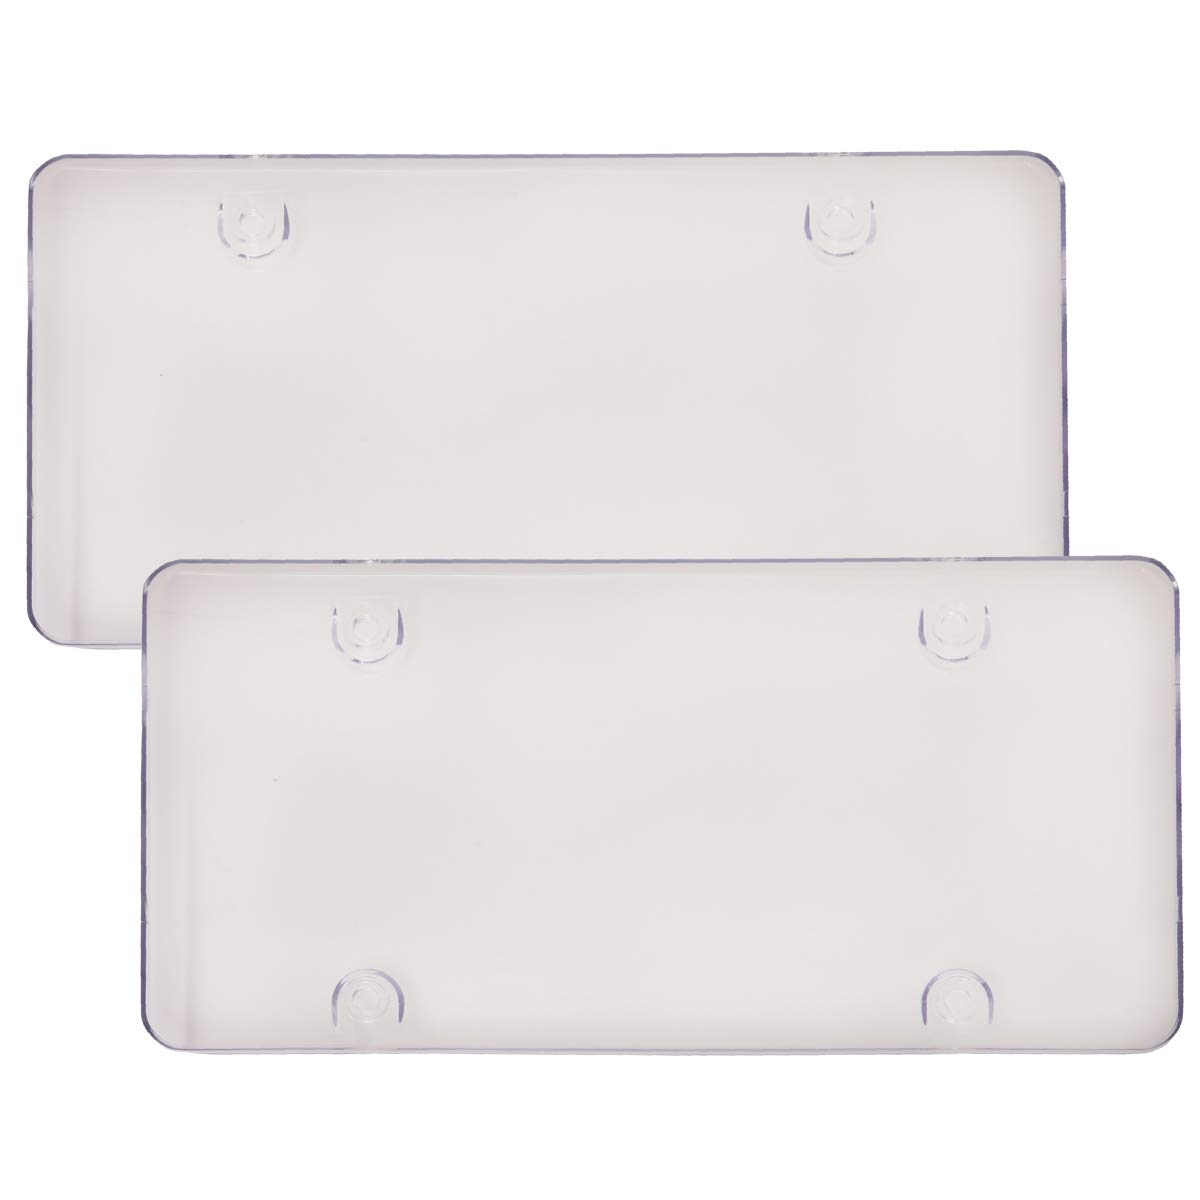 WildAuto License Plate Cover, 2Pack Car Licenses Frame Shields with Screws Caps (Clear Flat)